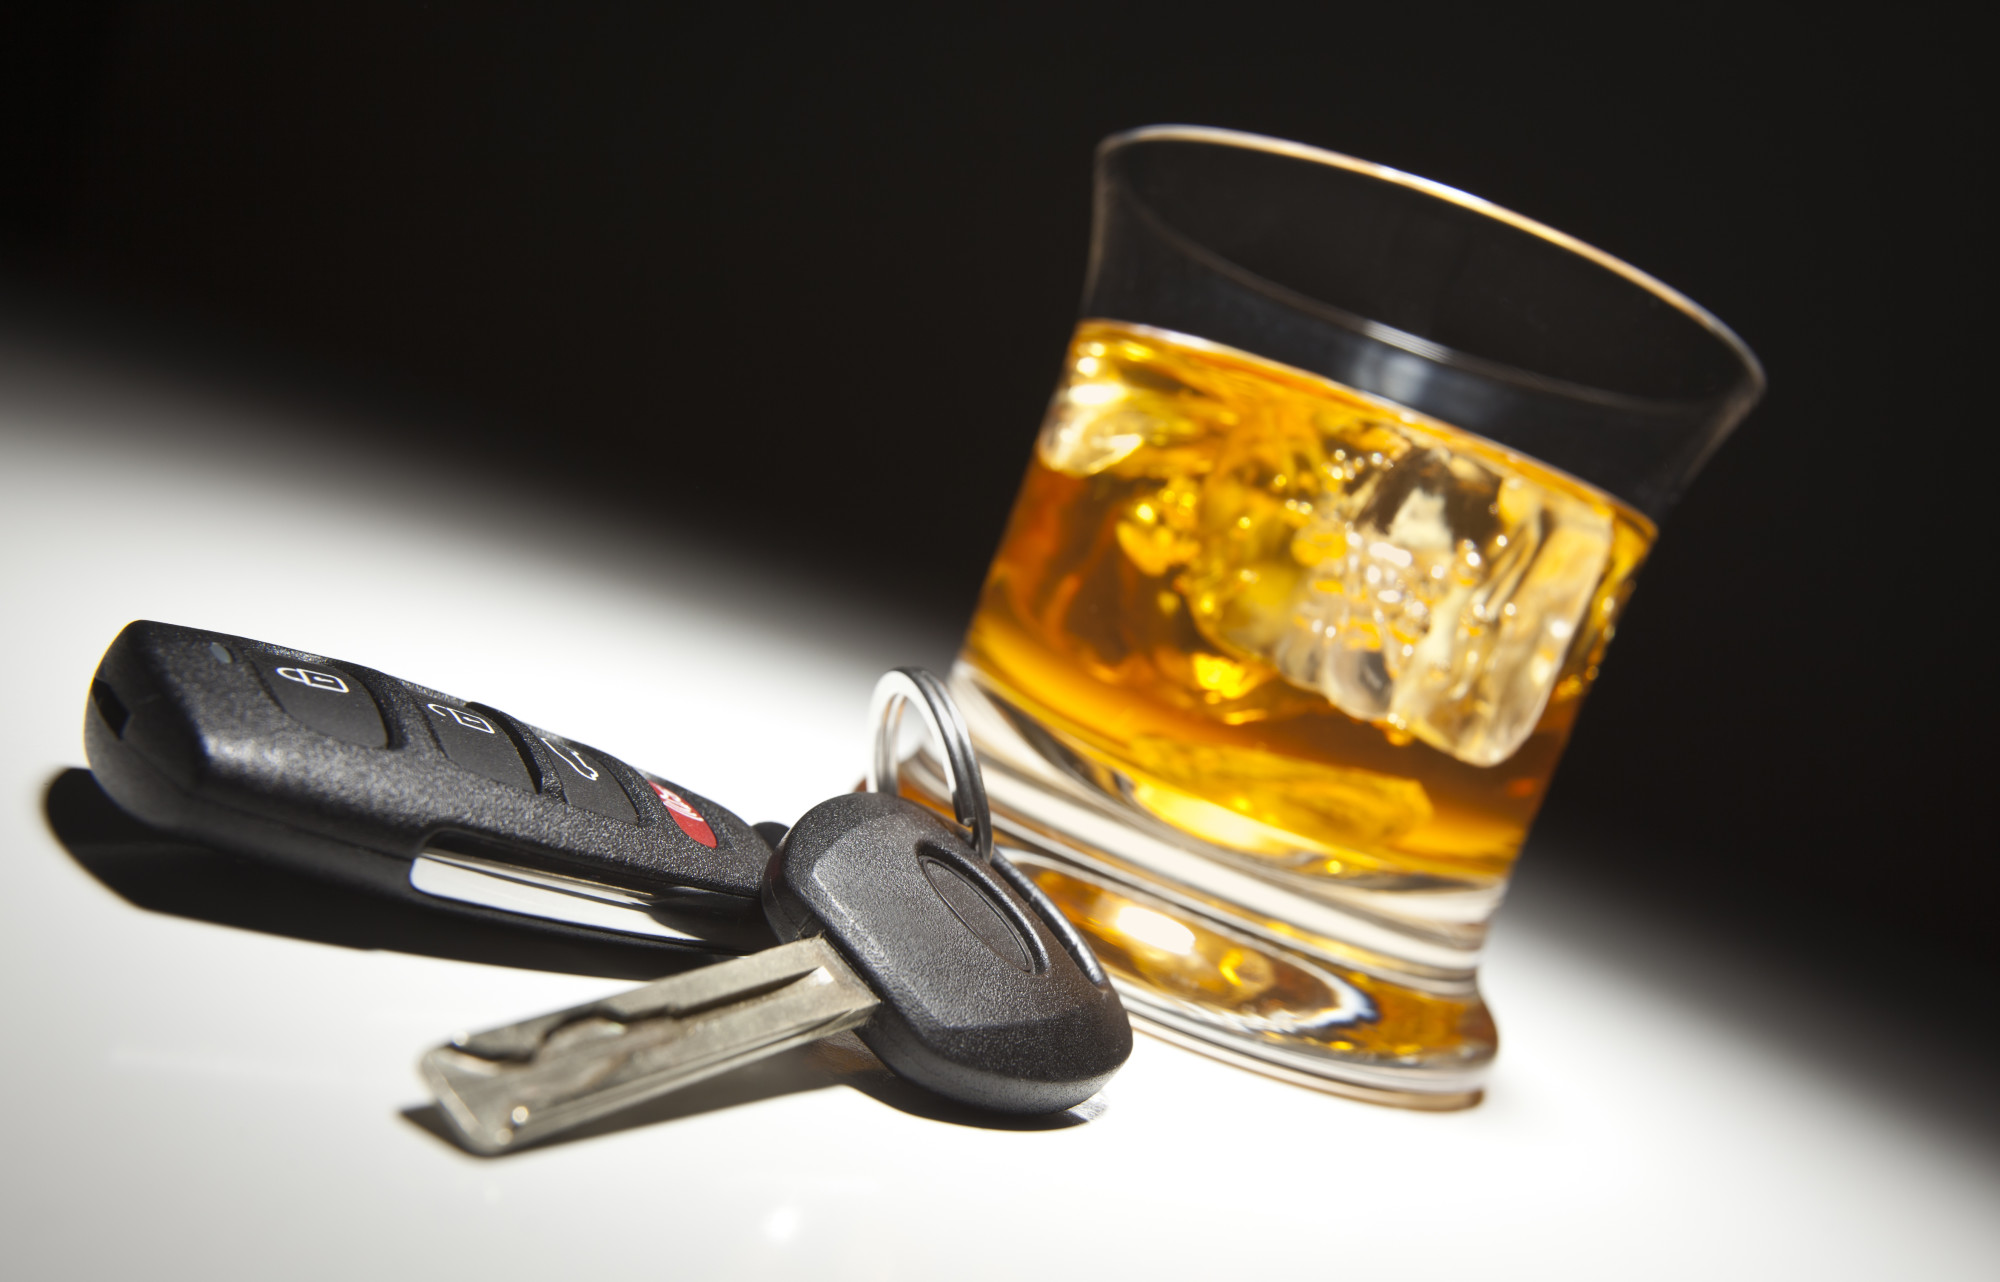 Back on the Road Again: 4 Things You Need to Know About Driving After a DUI in Florida